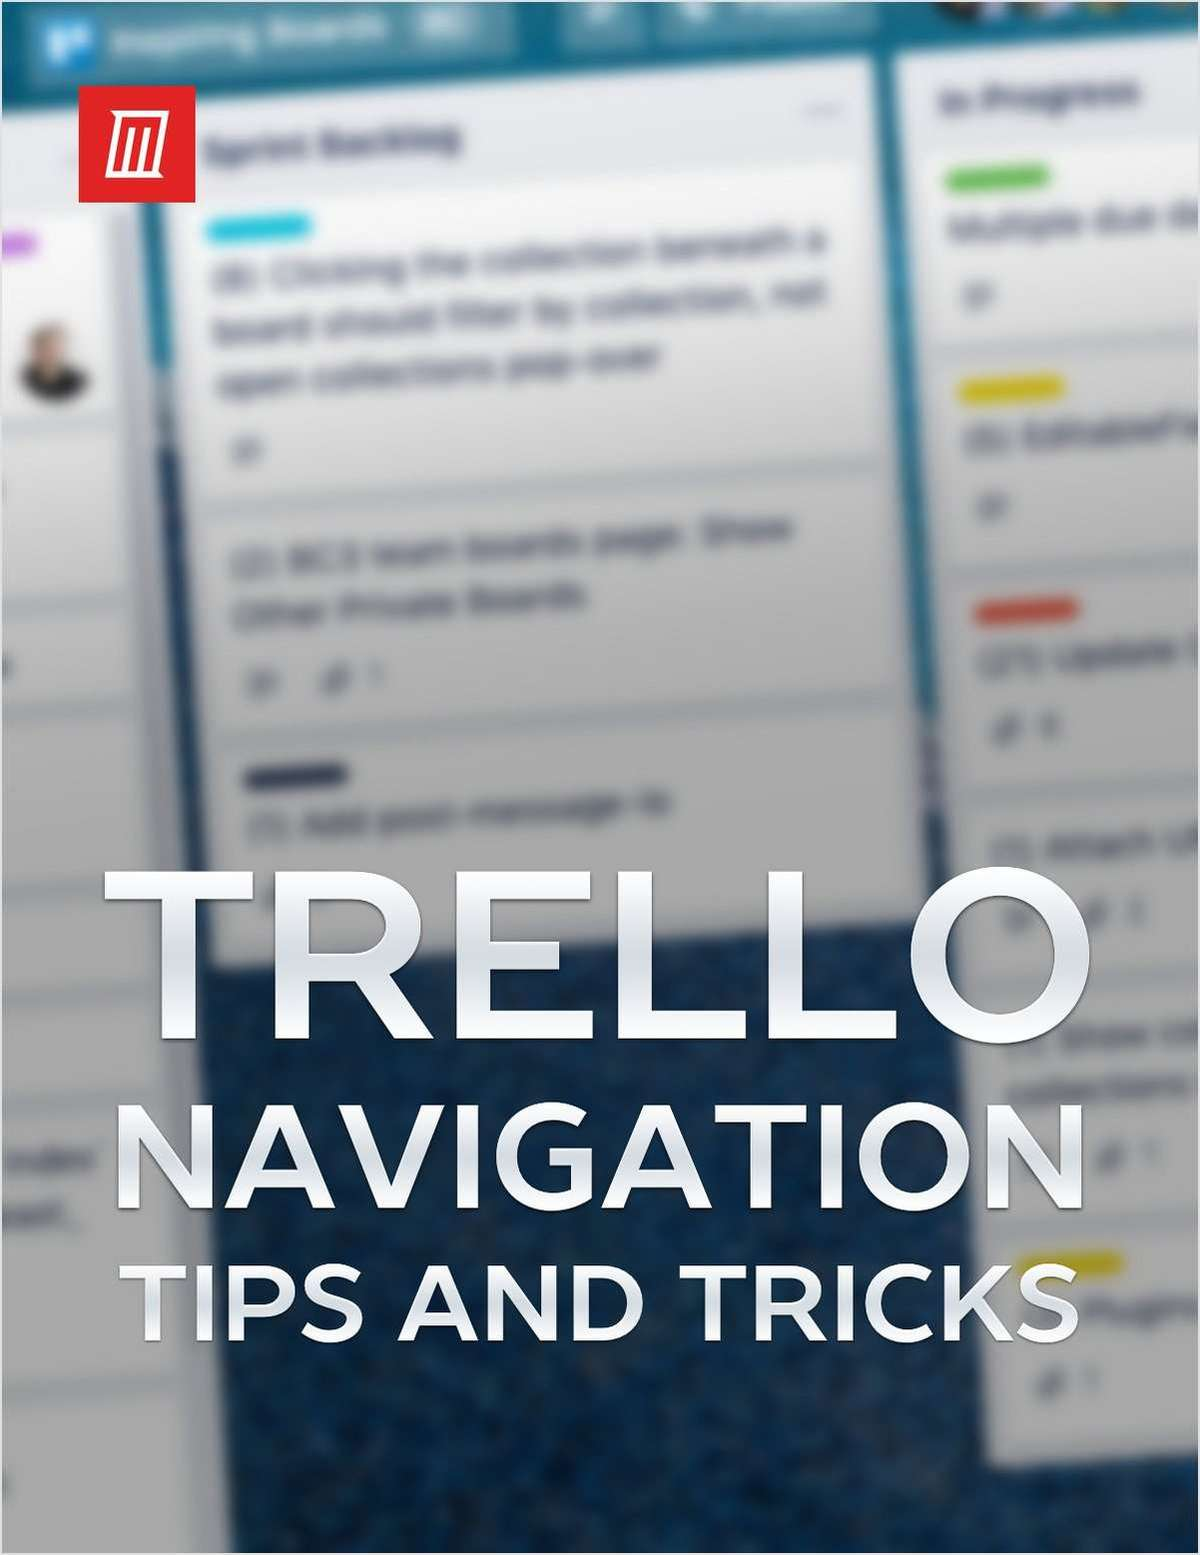 Useful Tips and Tricks for Navigating Trello